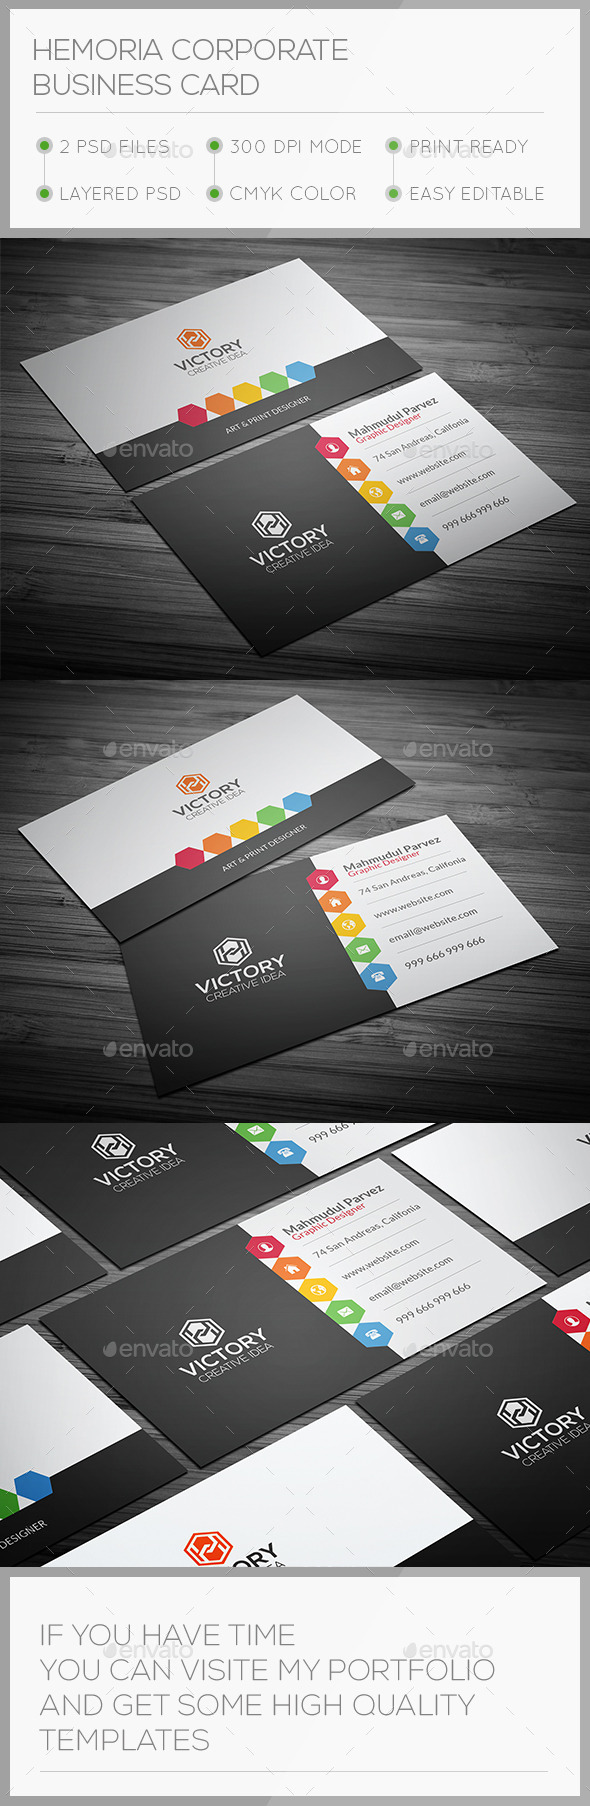 GraphicRiver Hemoria Corporate Business Card 10817449